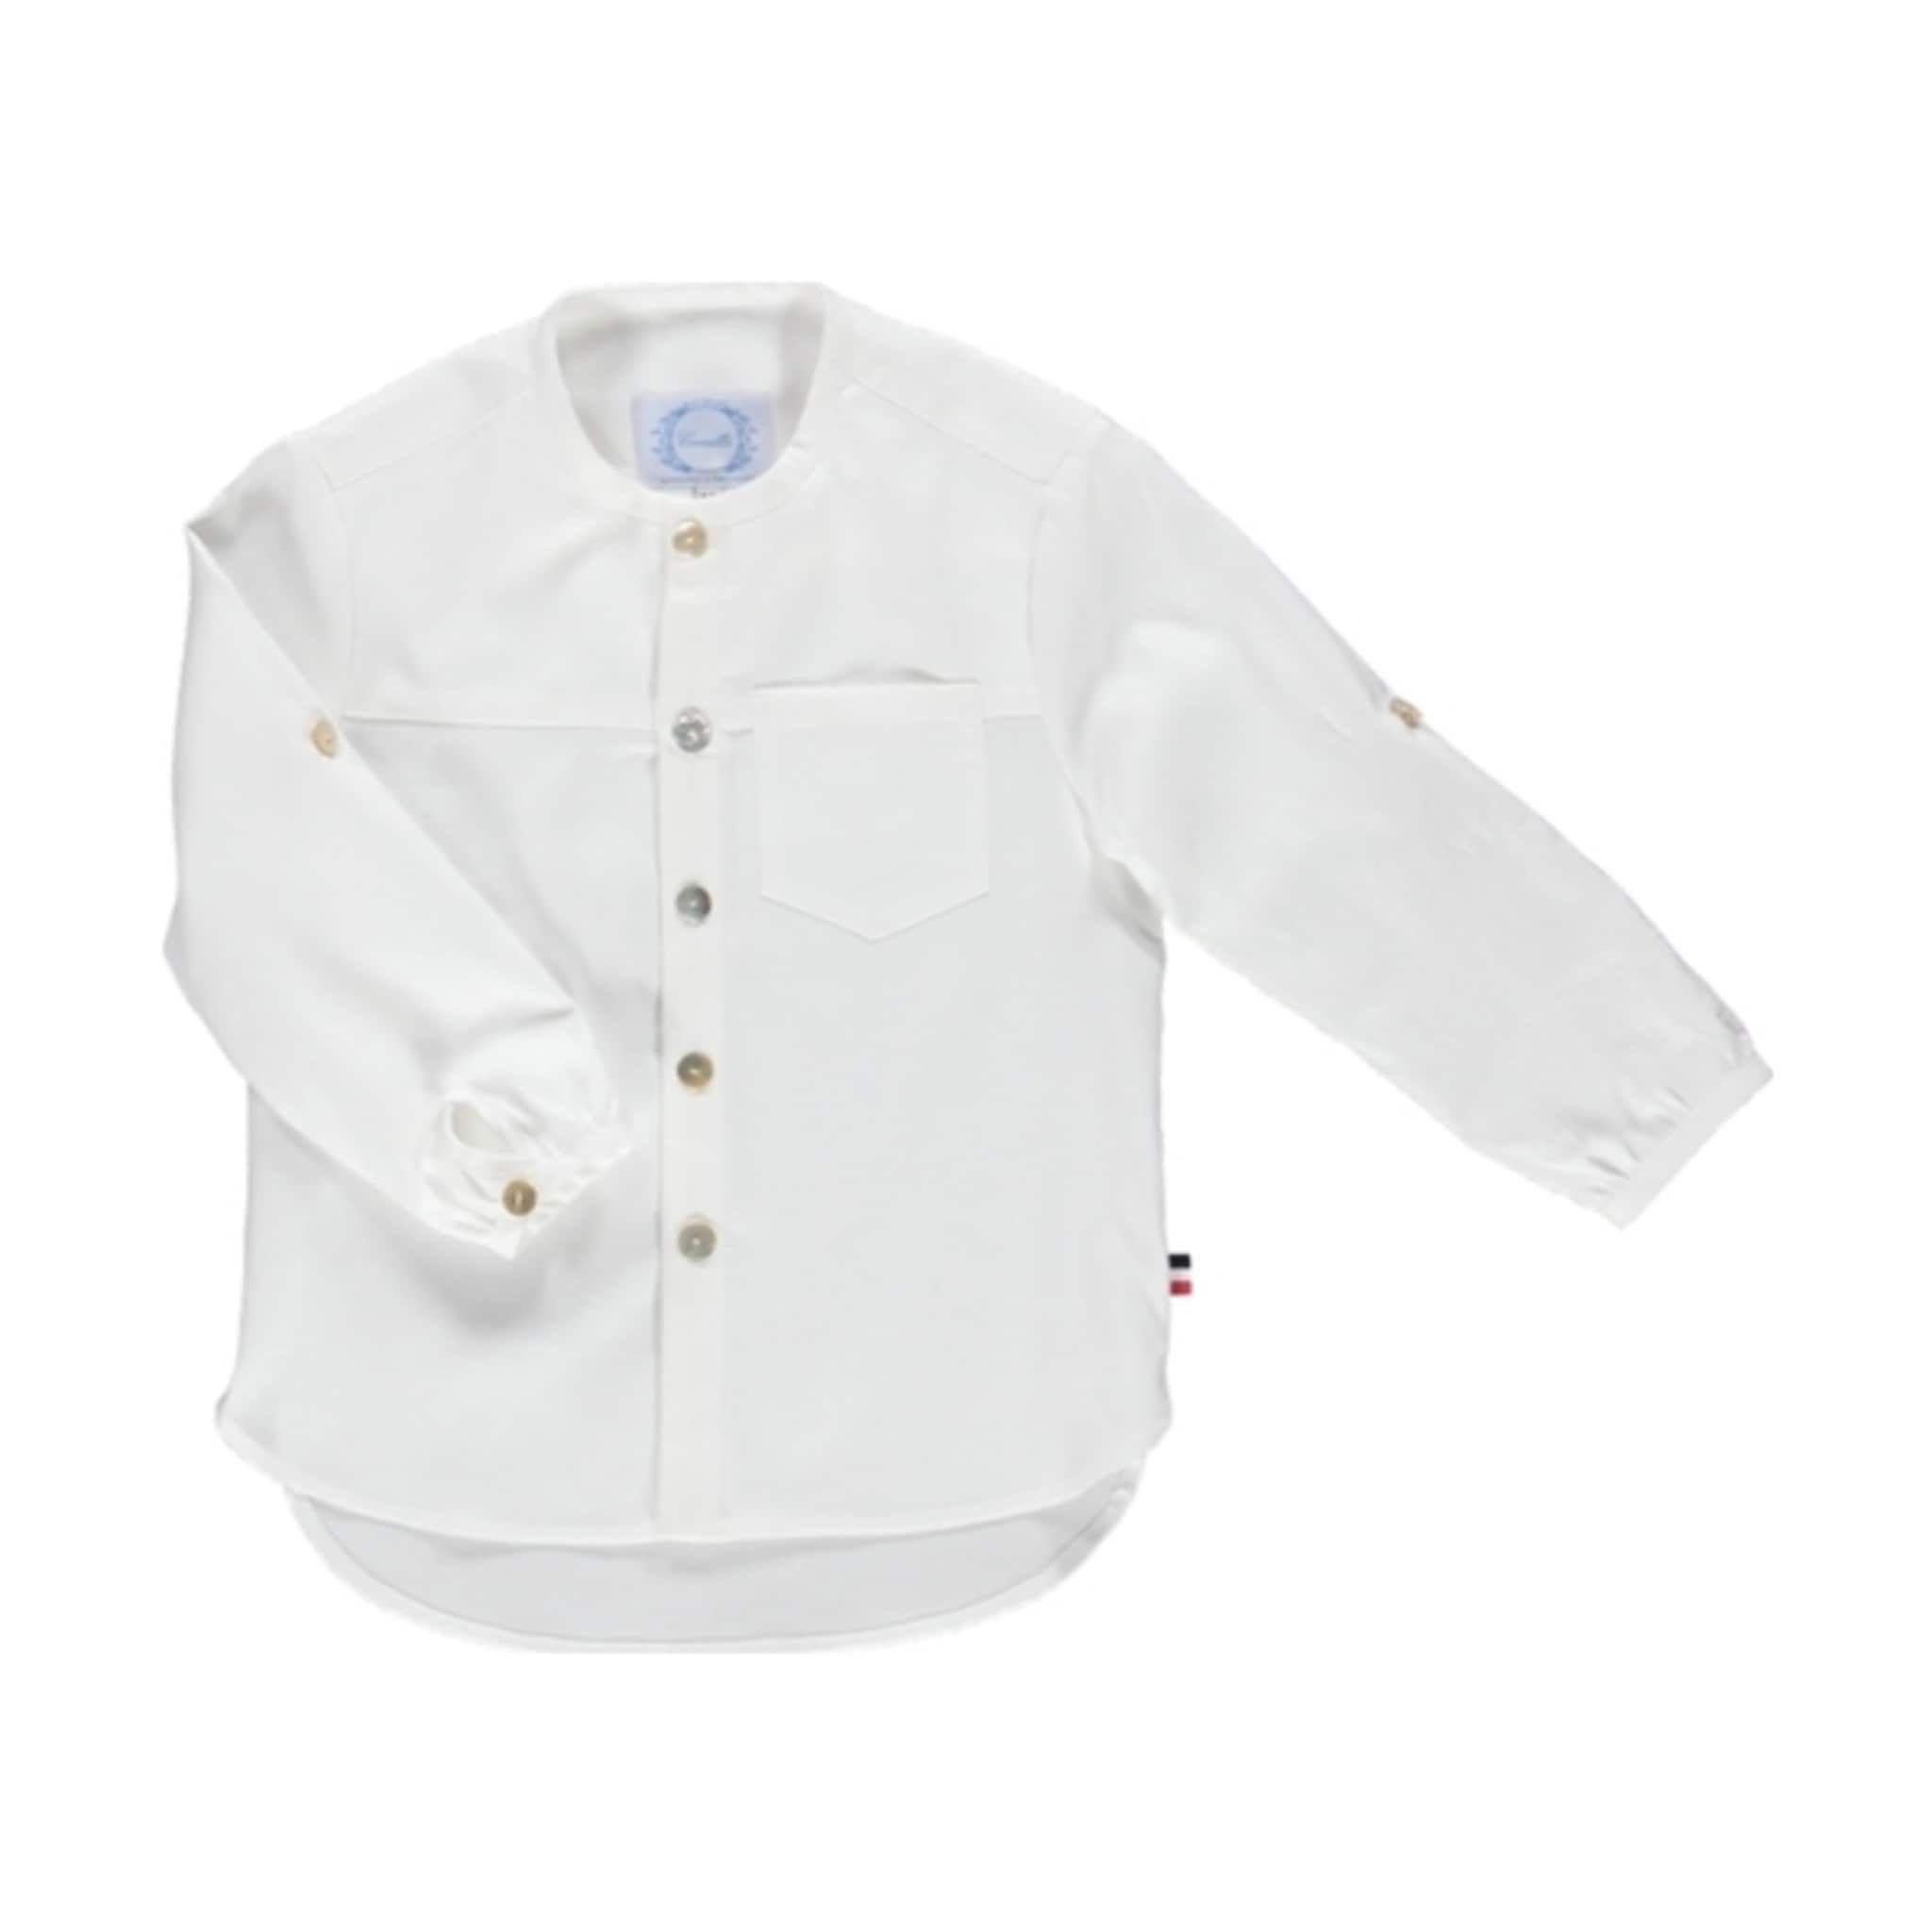 Mandarin collar flannel  White Shirt  Camellia at Kide  AW   Baby Boy Collection